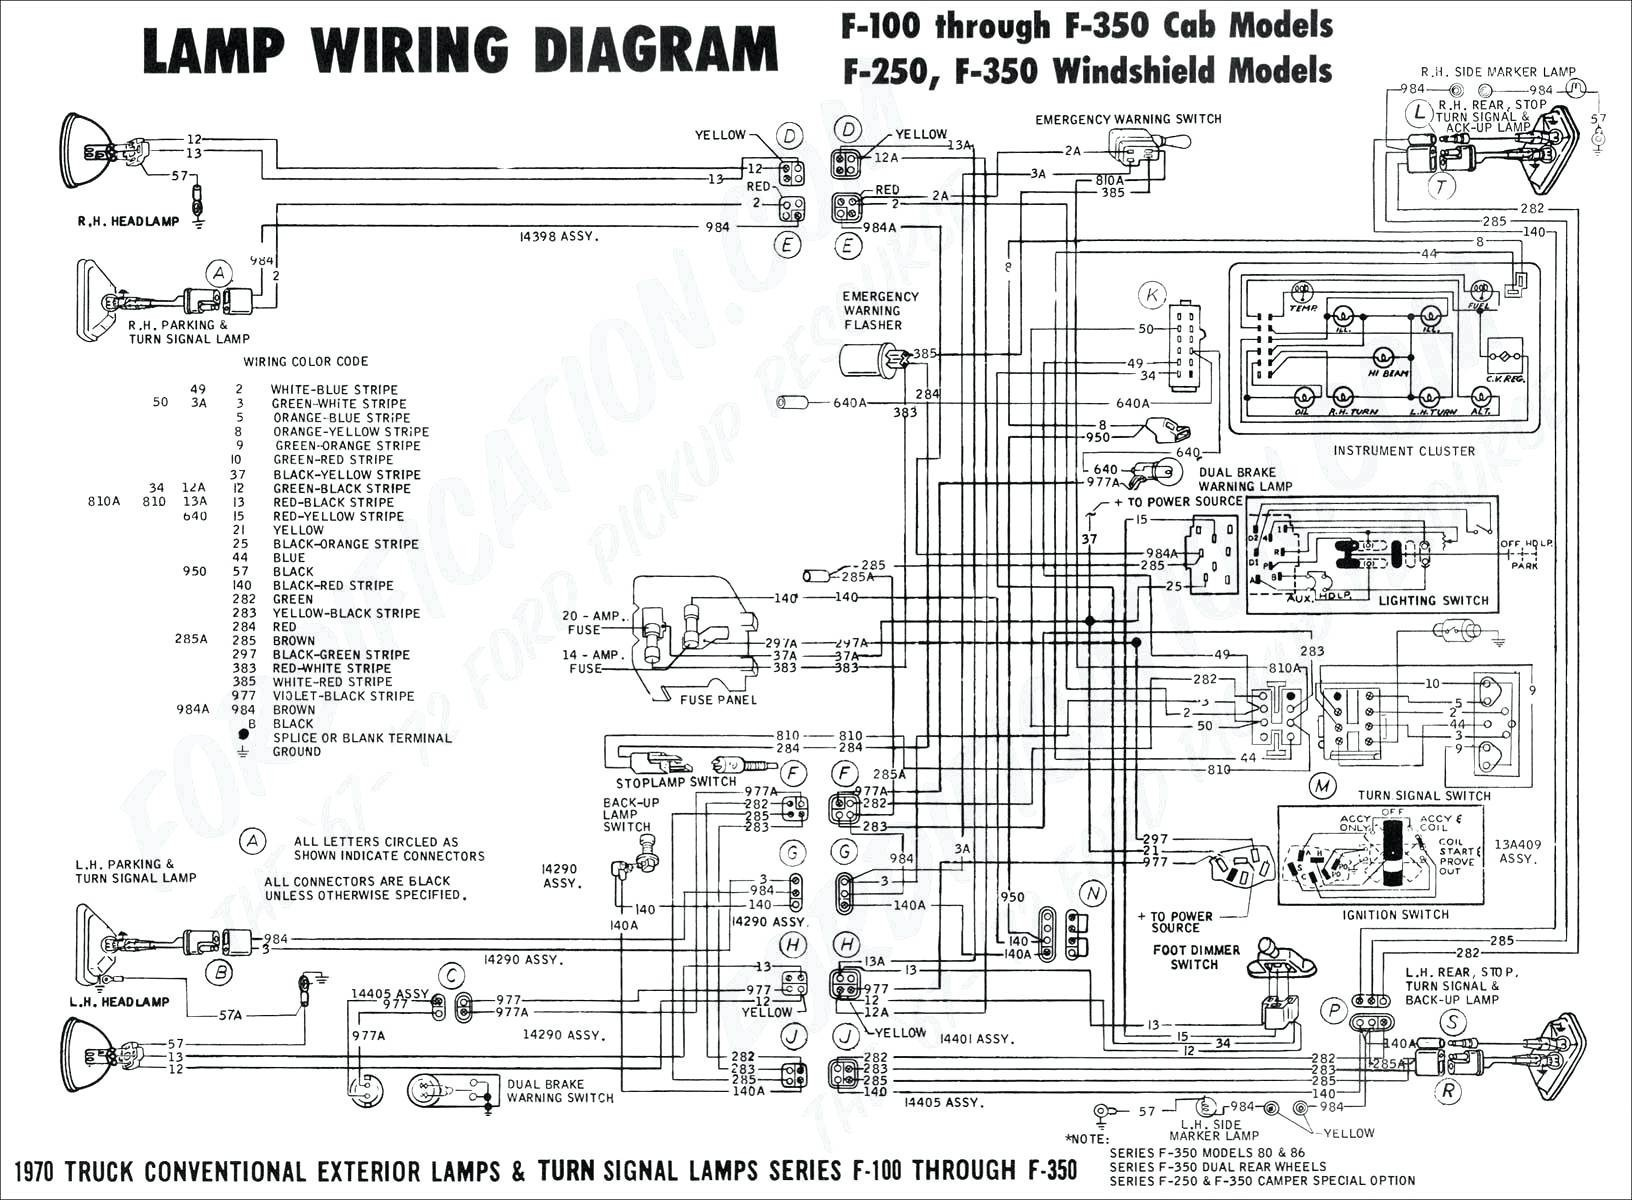 94 toyota Corolla Engine Diagram 1993 toyota Corolla Fuse Diagram Of 94 toyota Corolla Engine Diagram